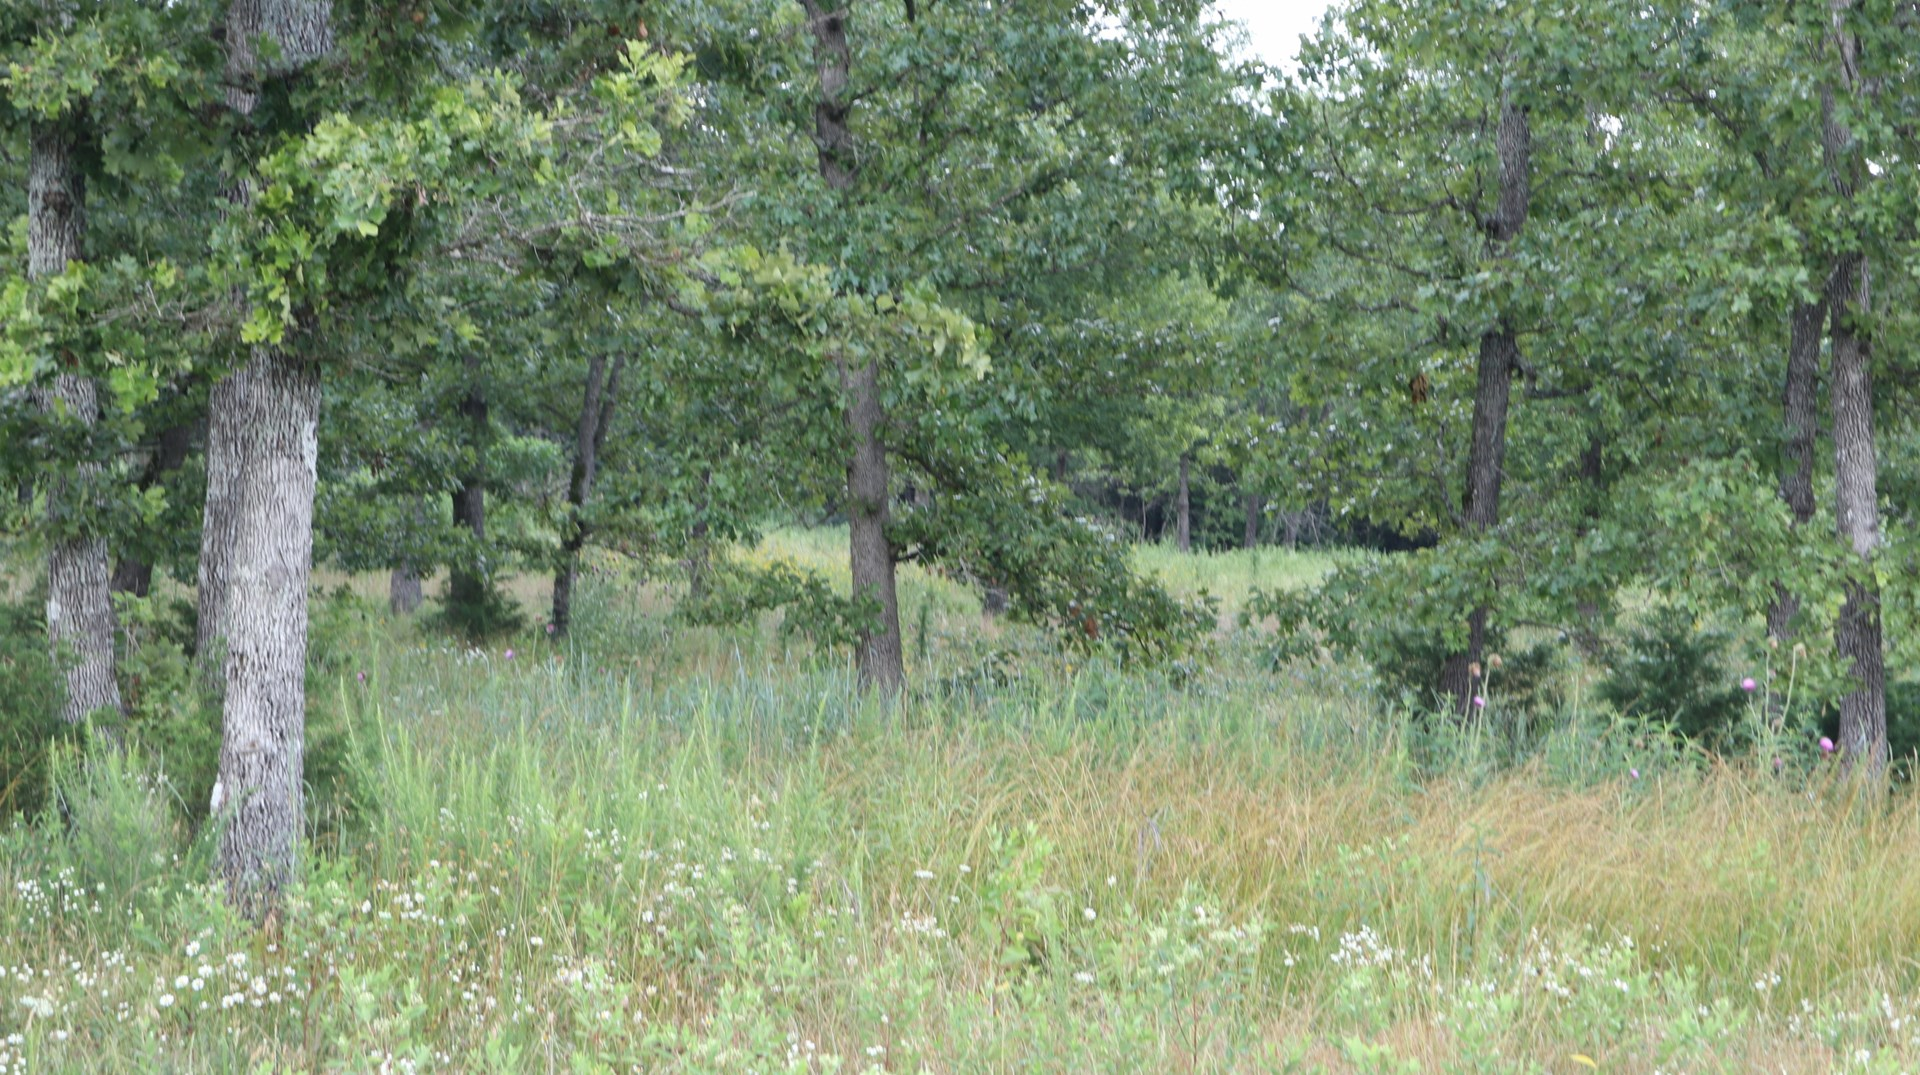 Vacant Land for Sale in North Central Arkansas